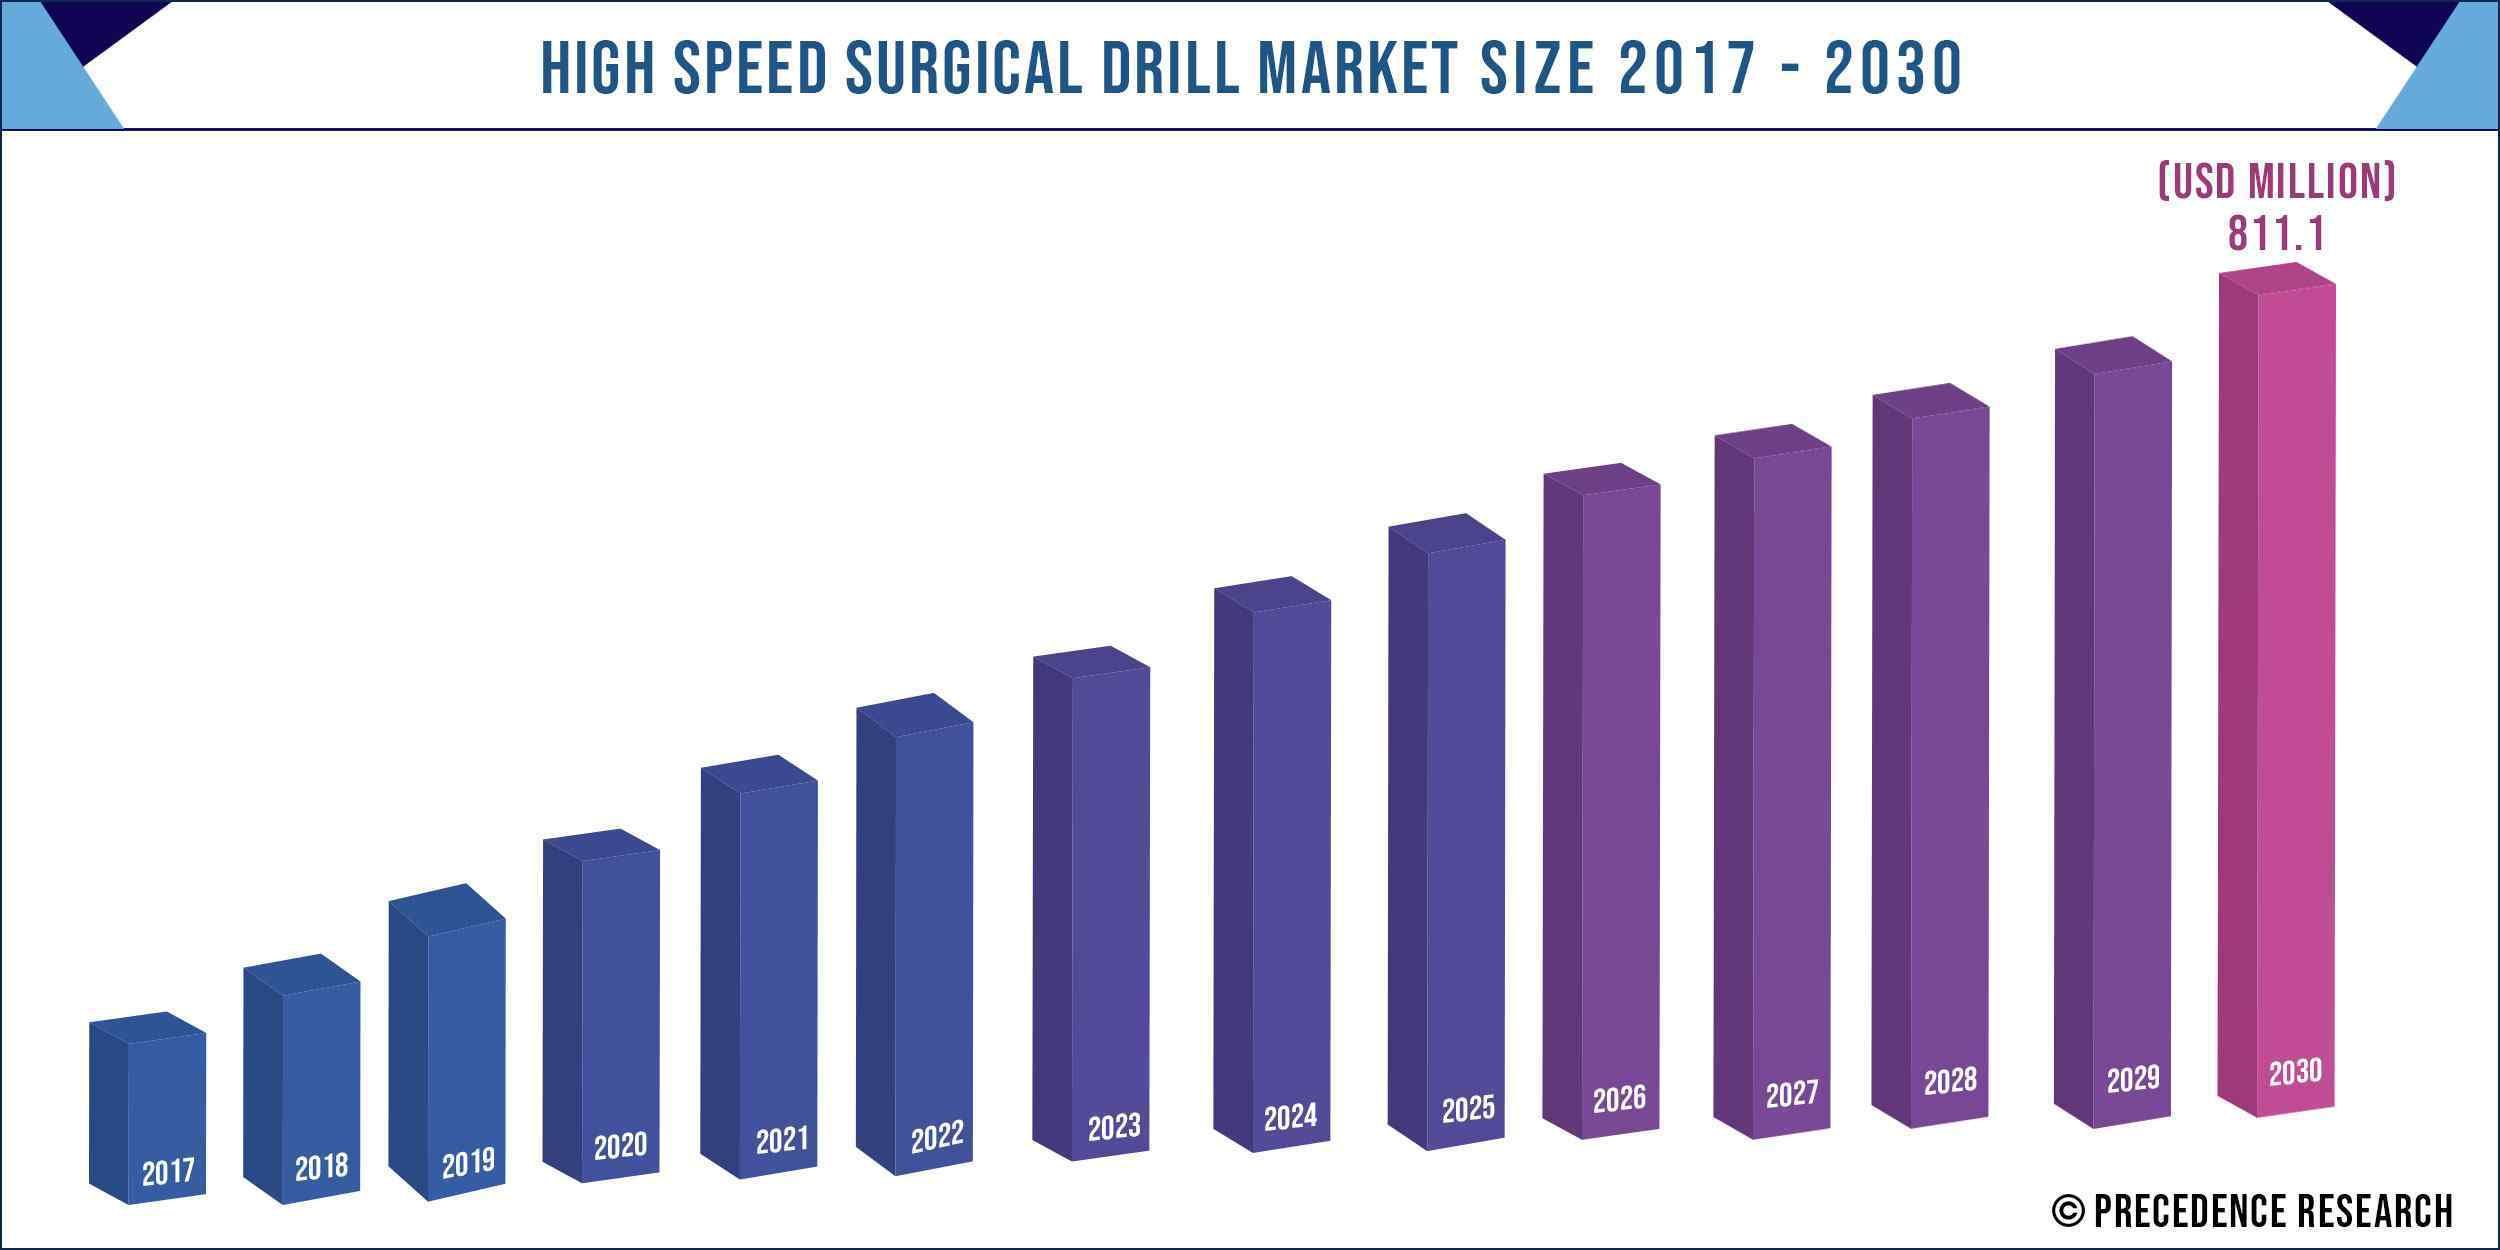 High Speed Surgical Drill Market Size 2017-2030